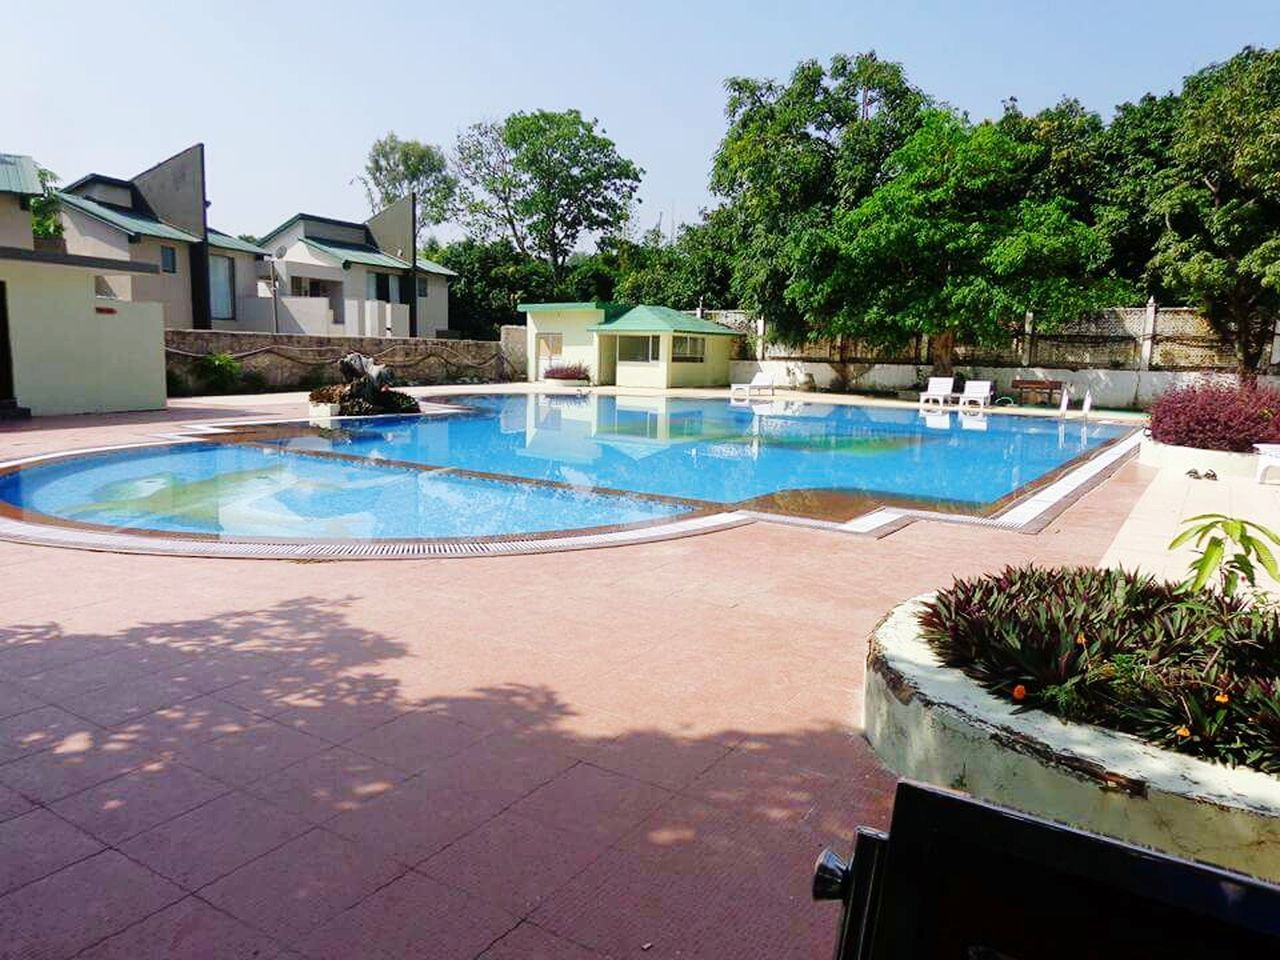 swimming pool, water, outdoors, day, building exterior, architecture, tree, sunlight, shadow, no people, luxury, nature, sky